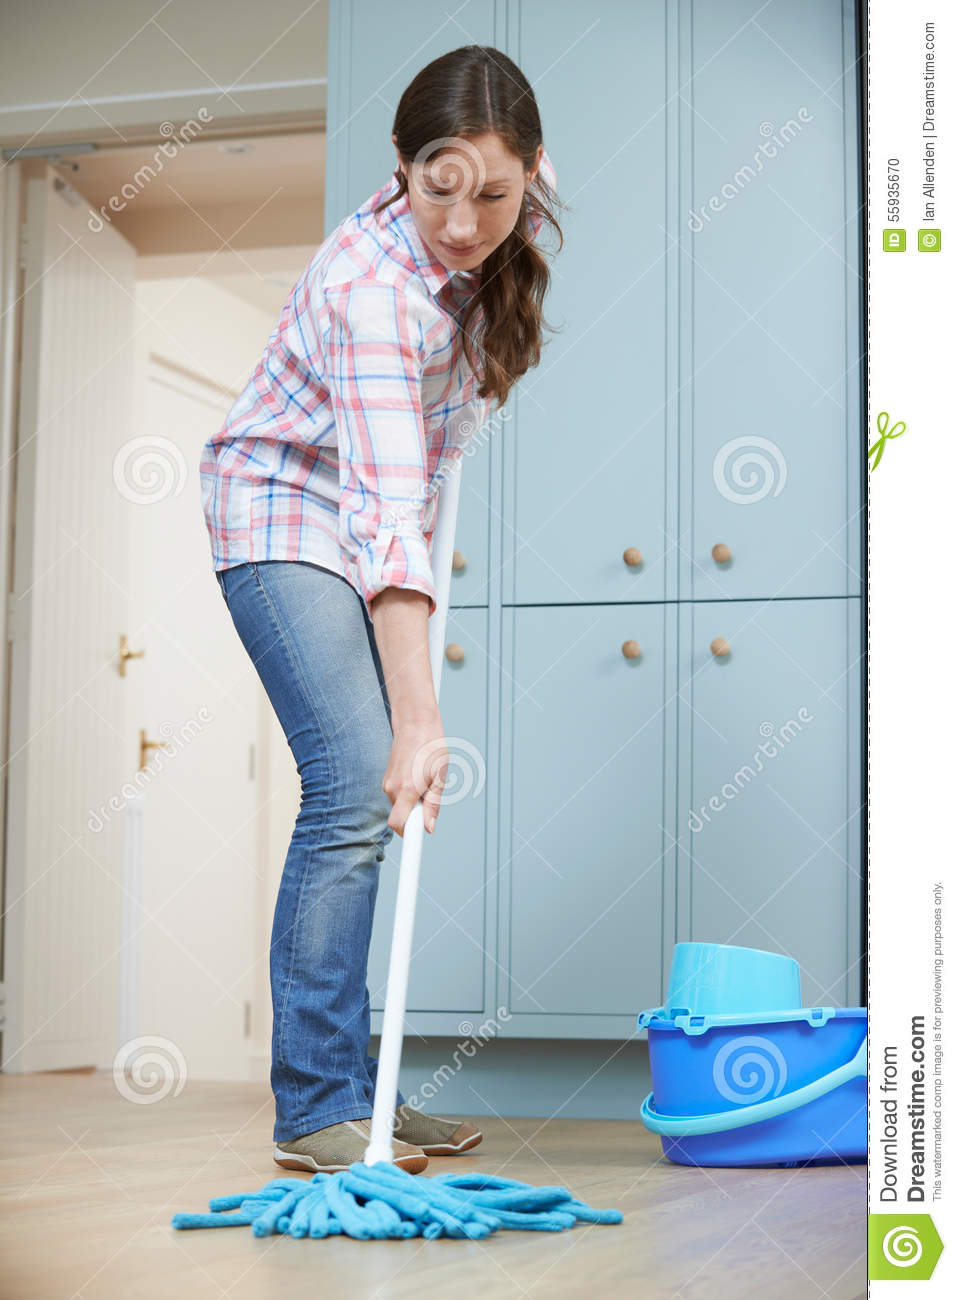 Kitchen Floor Mop Woman Cleaning Kitchen Floor With Mop Stock Photo Image 55935670